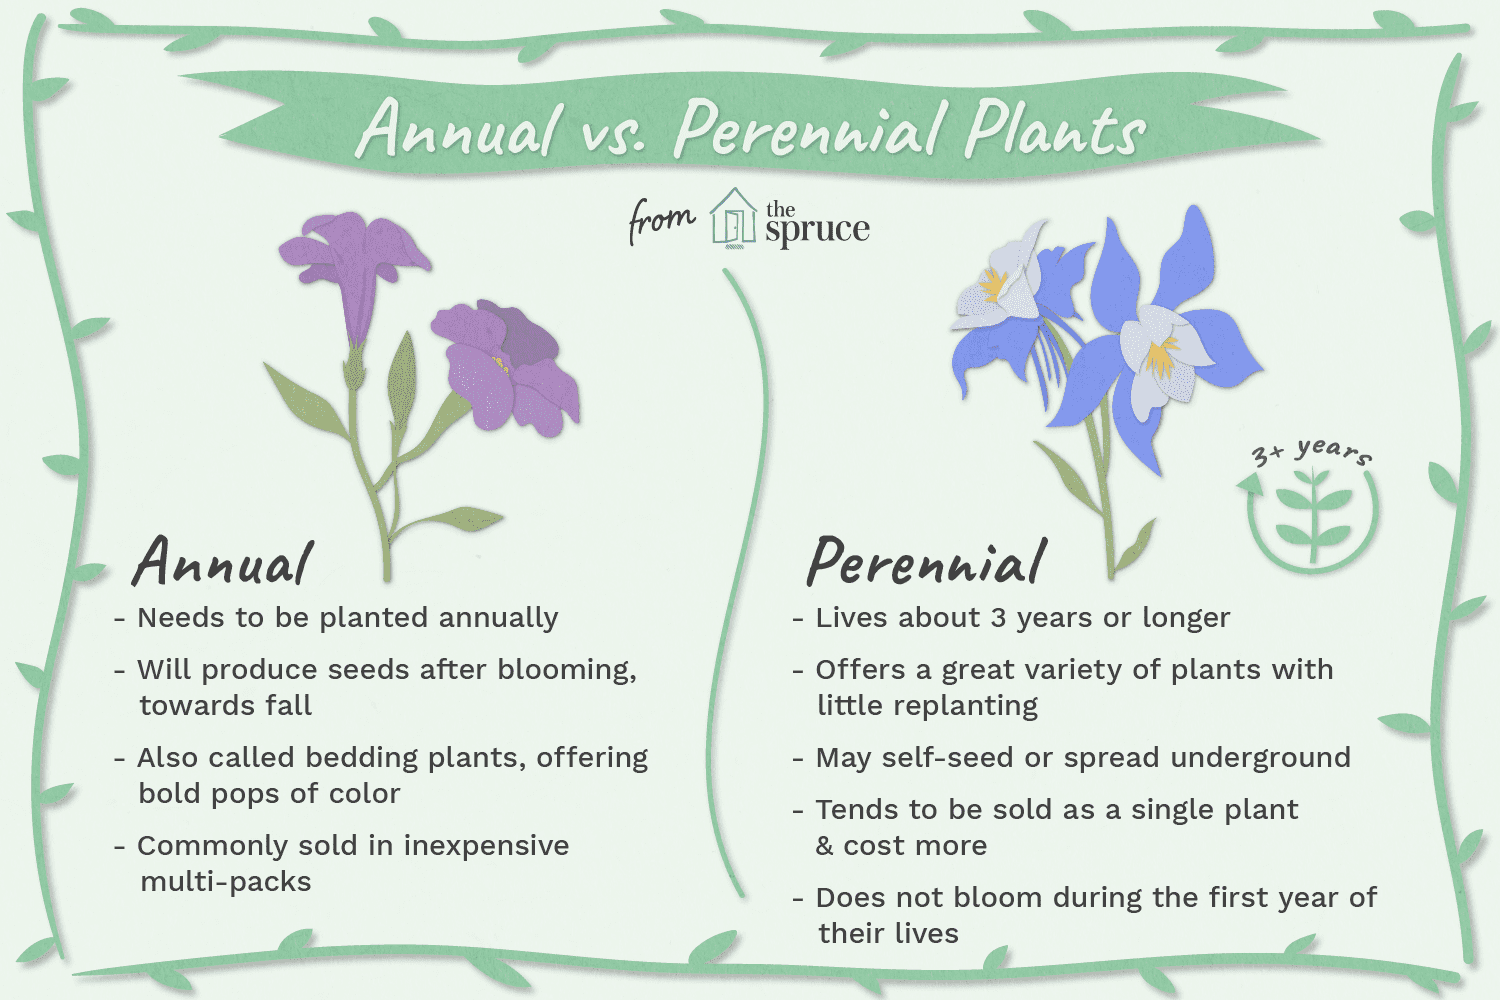 Annual Plants Vs Perennials